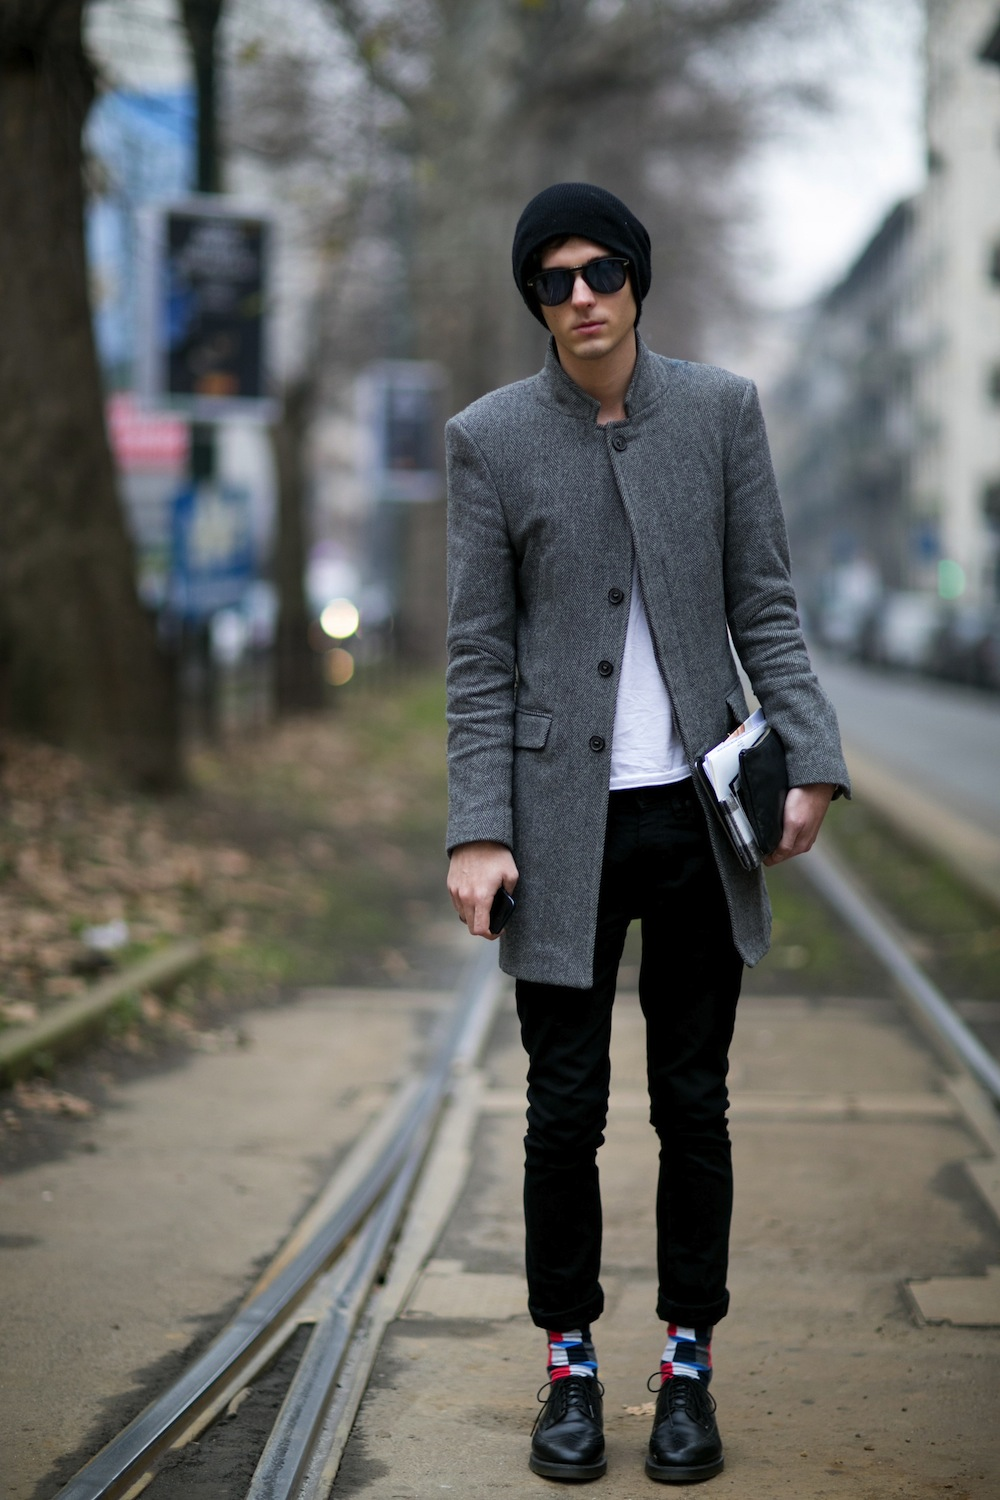 Best Men Fashion 2014 of the Best Street Style